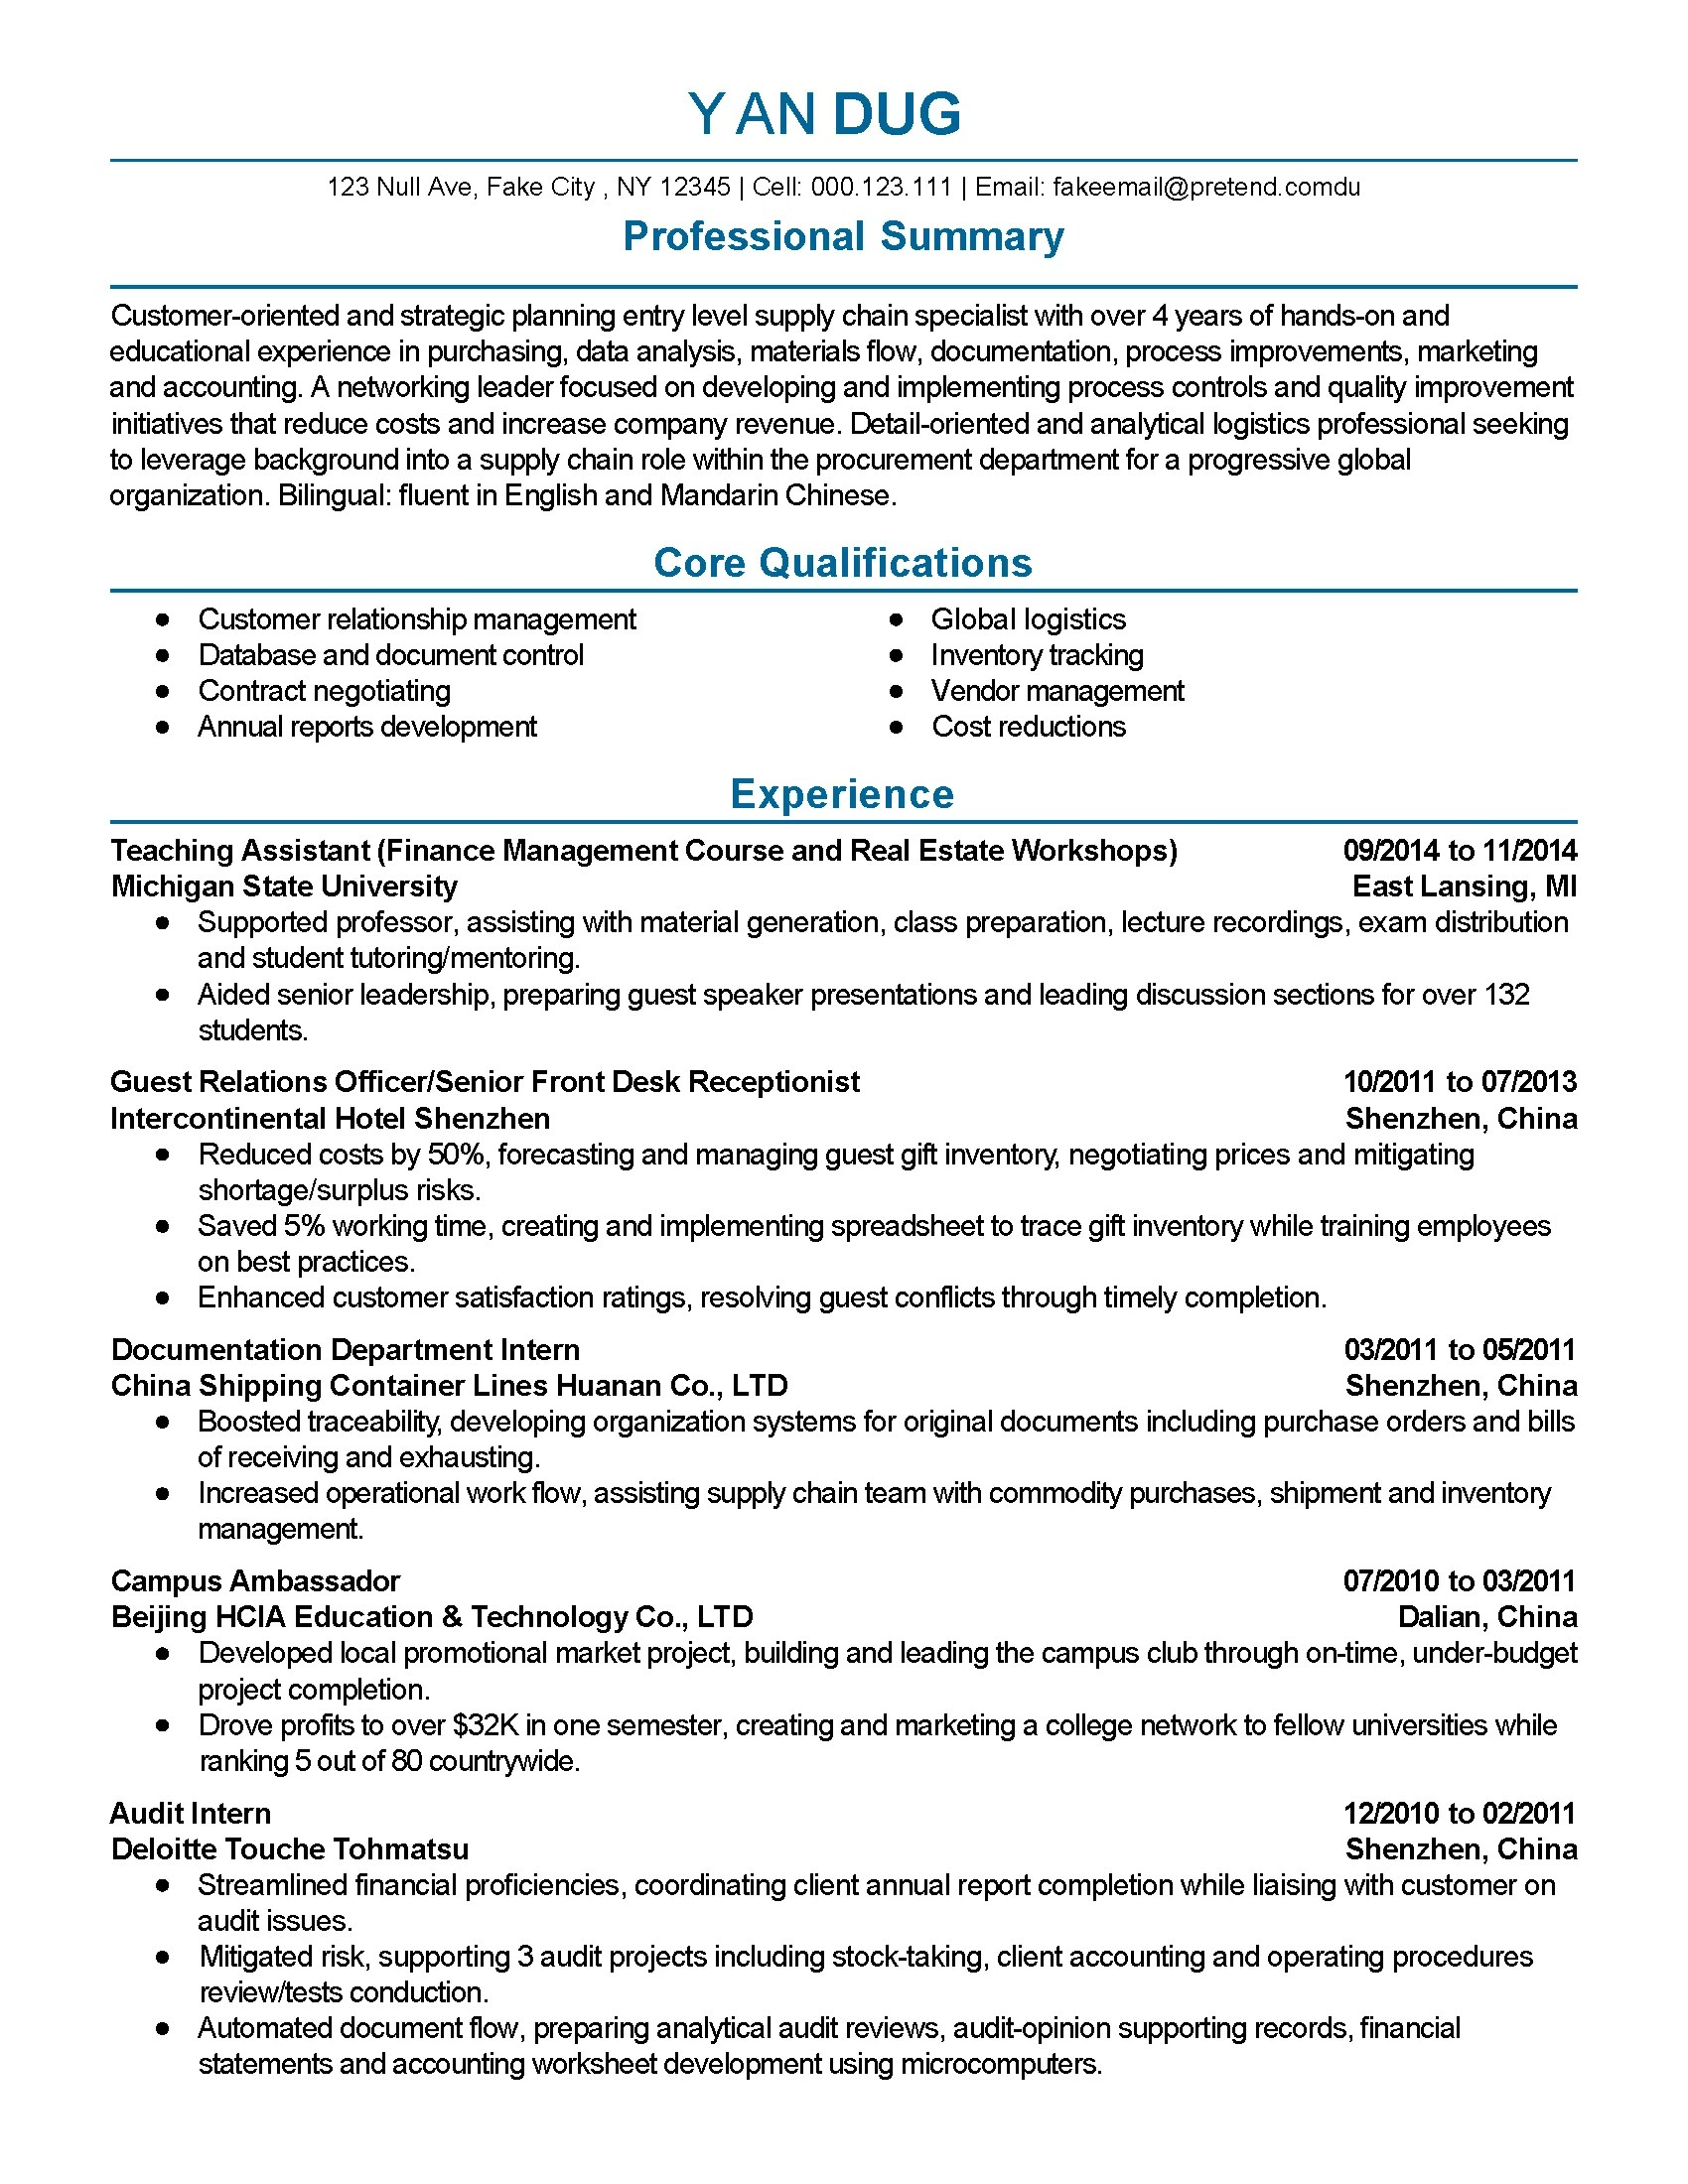 Resume Templates: Supply Chain Specialist